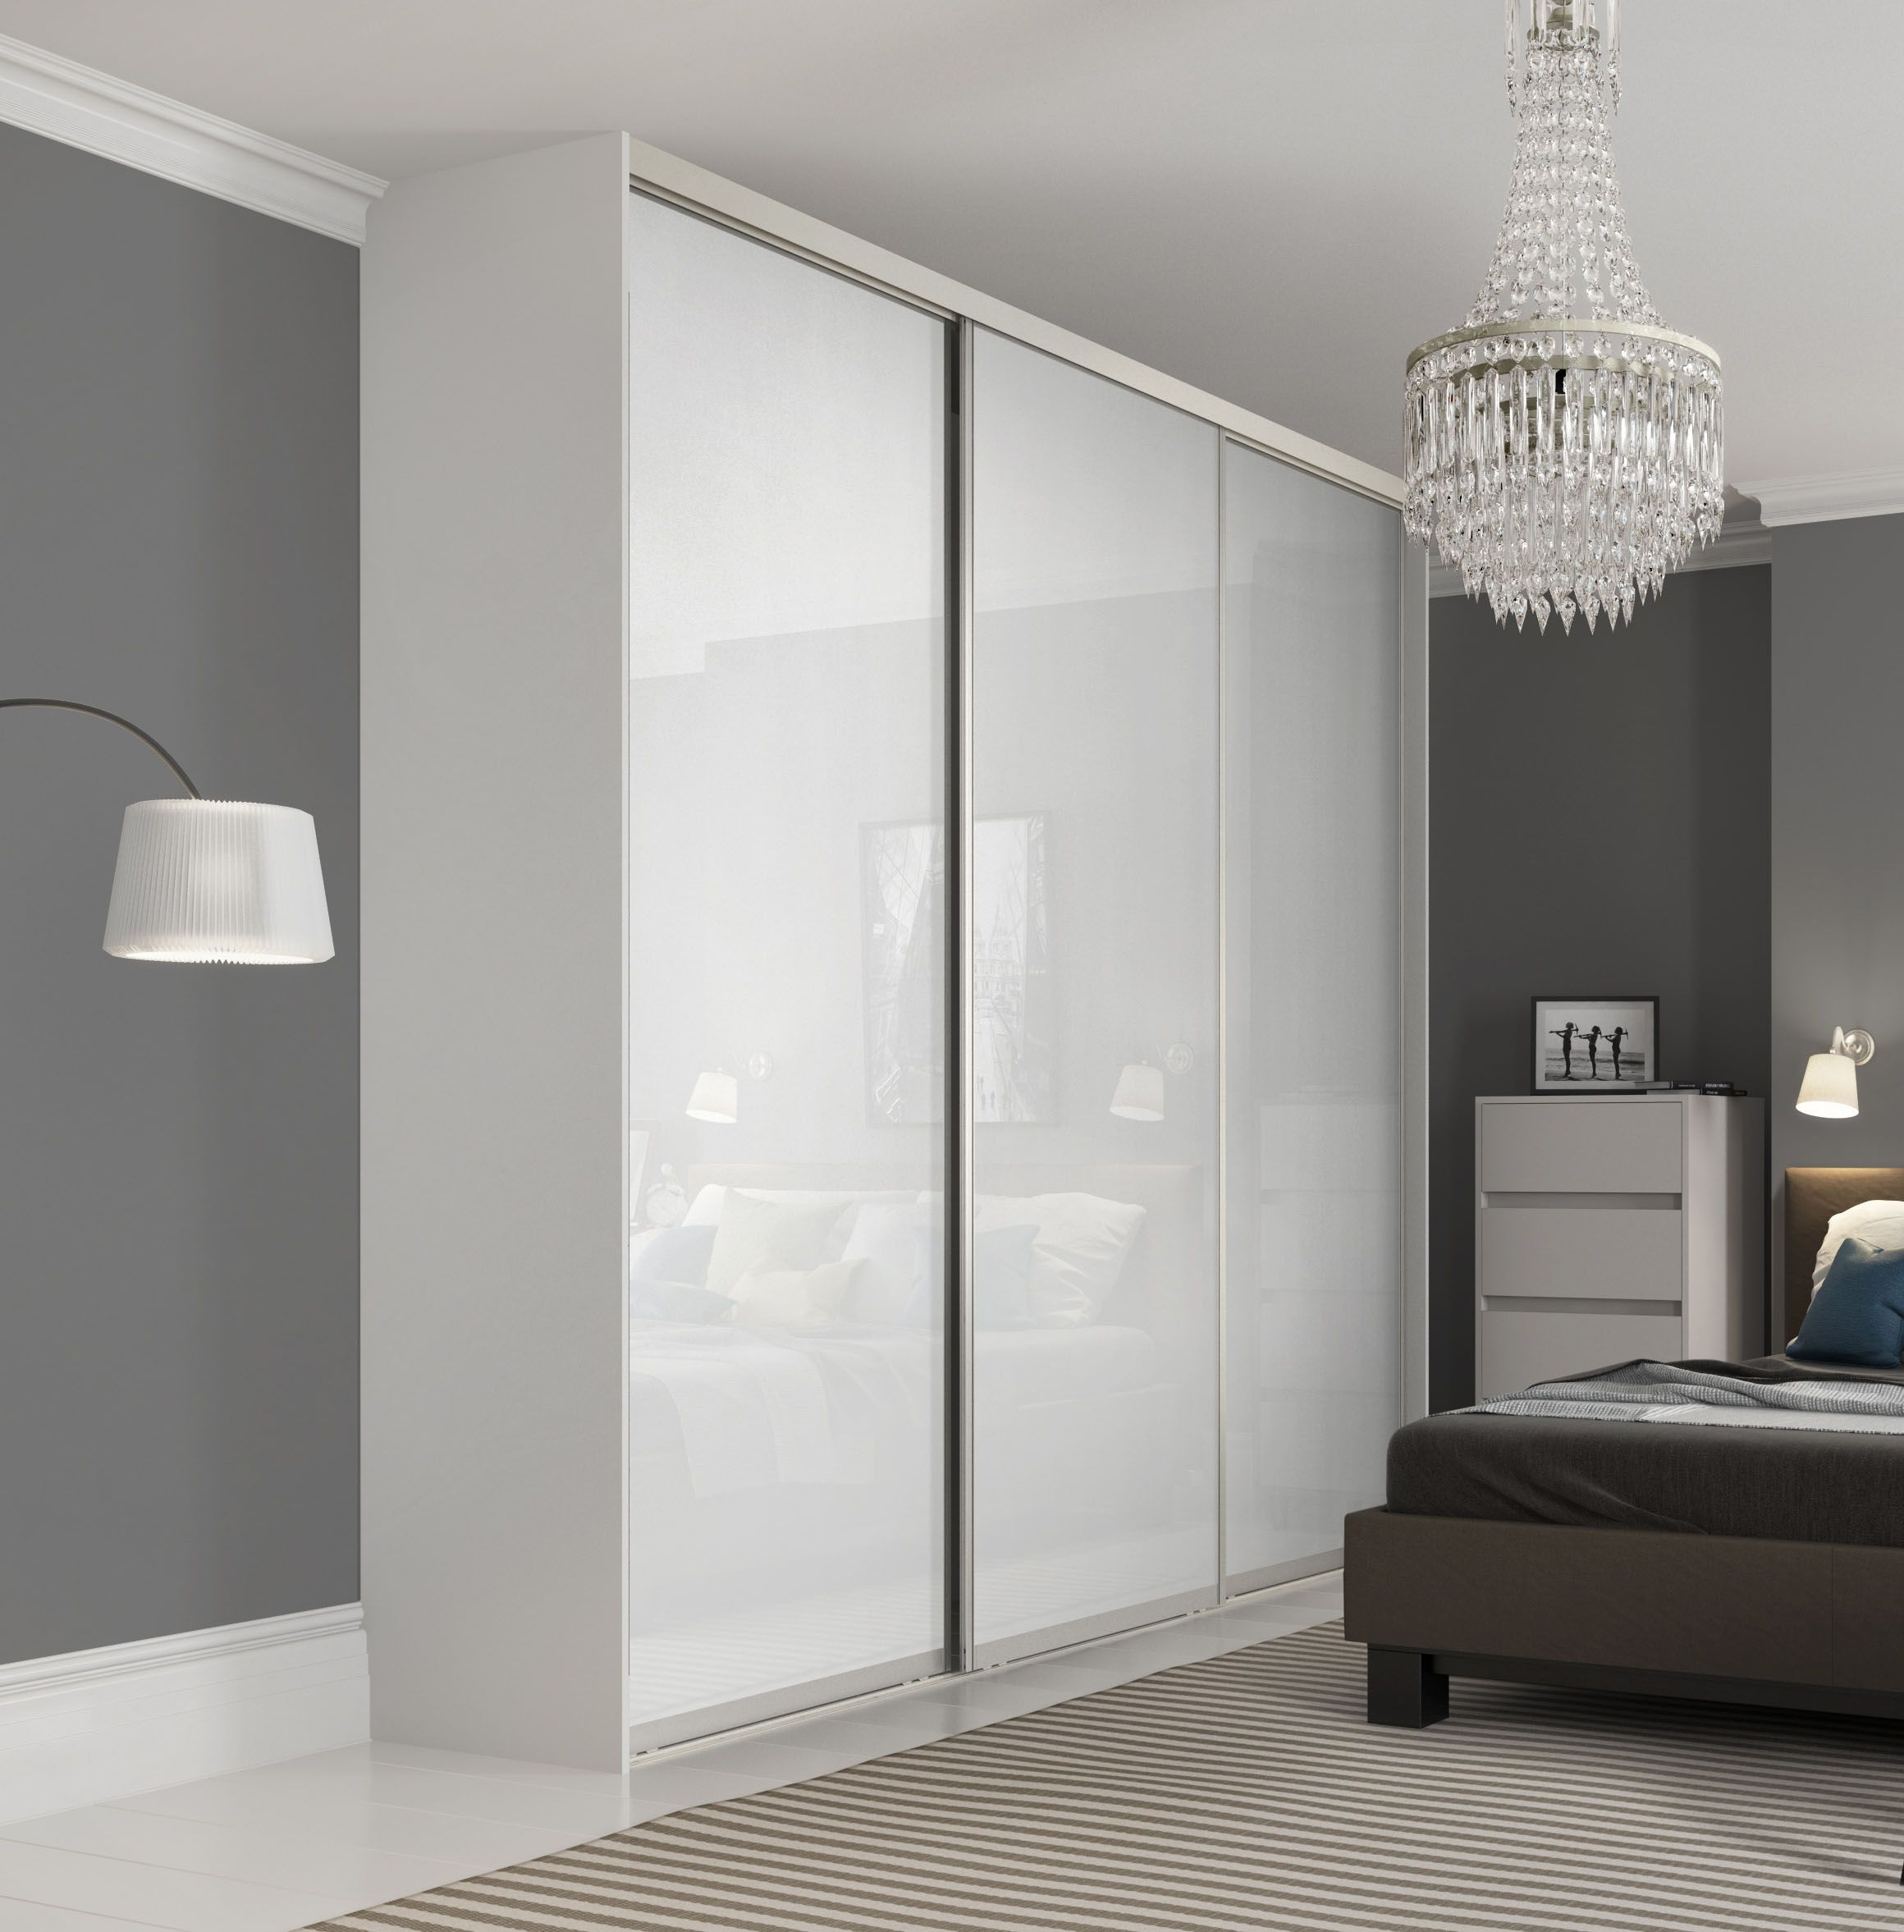 Premium Midi single panel sliding wardrobe doors in Pure White glass with Satin Silver frame